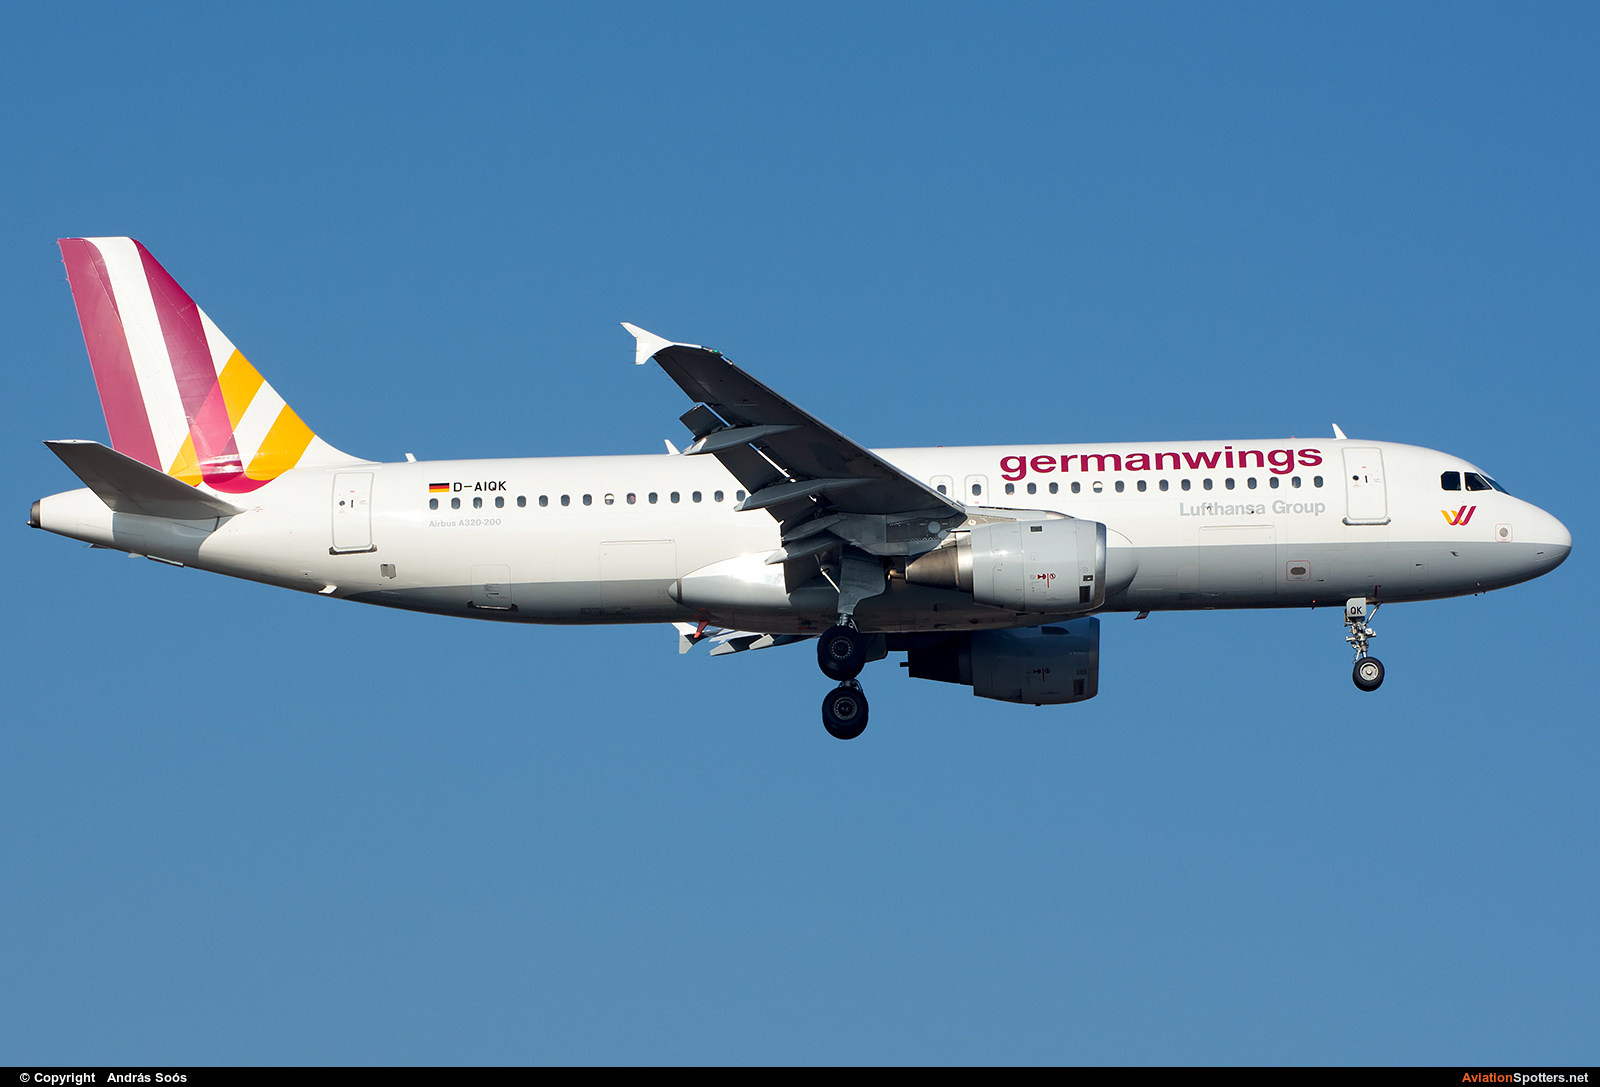 Germanwings  -  A320  (D-AIQK) By András Soós (sas1965)